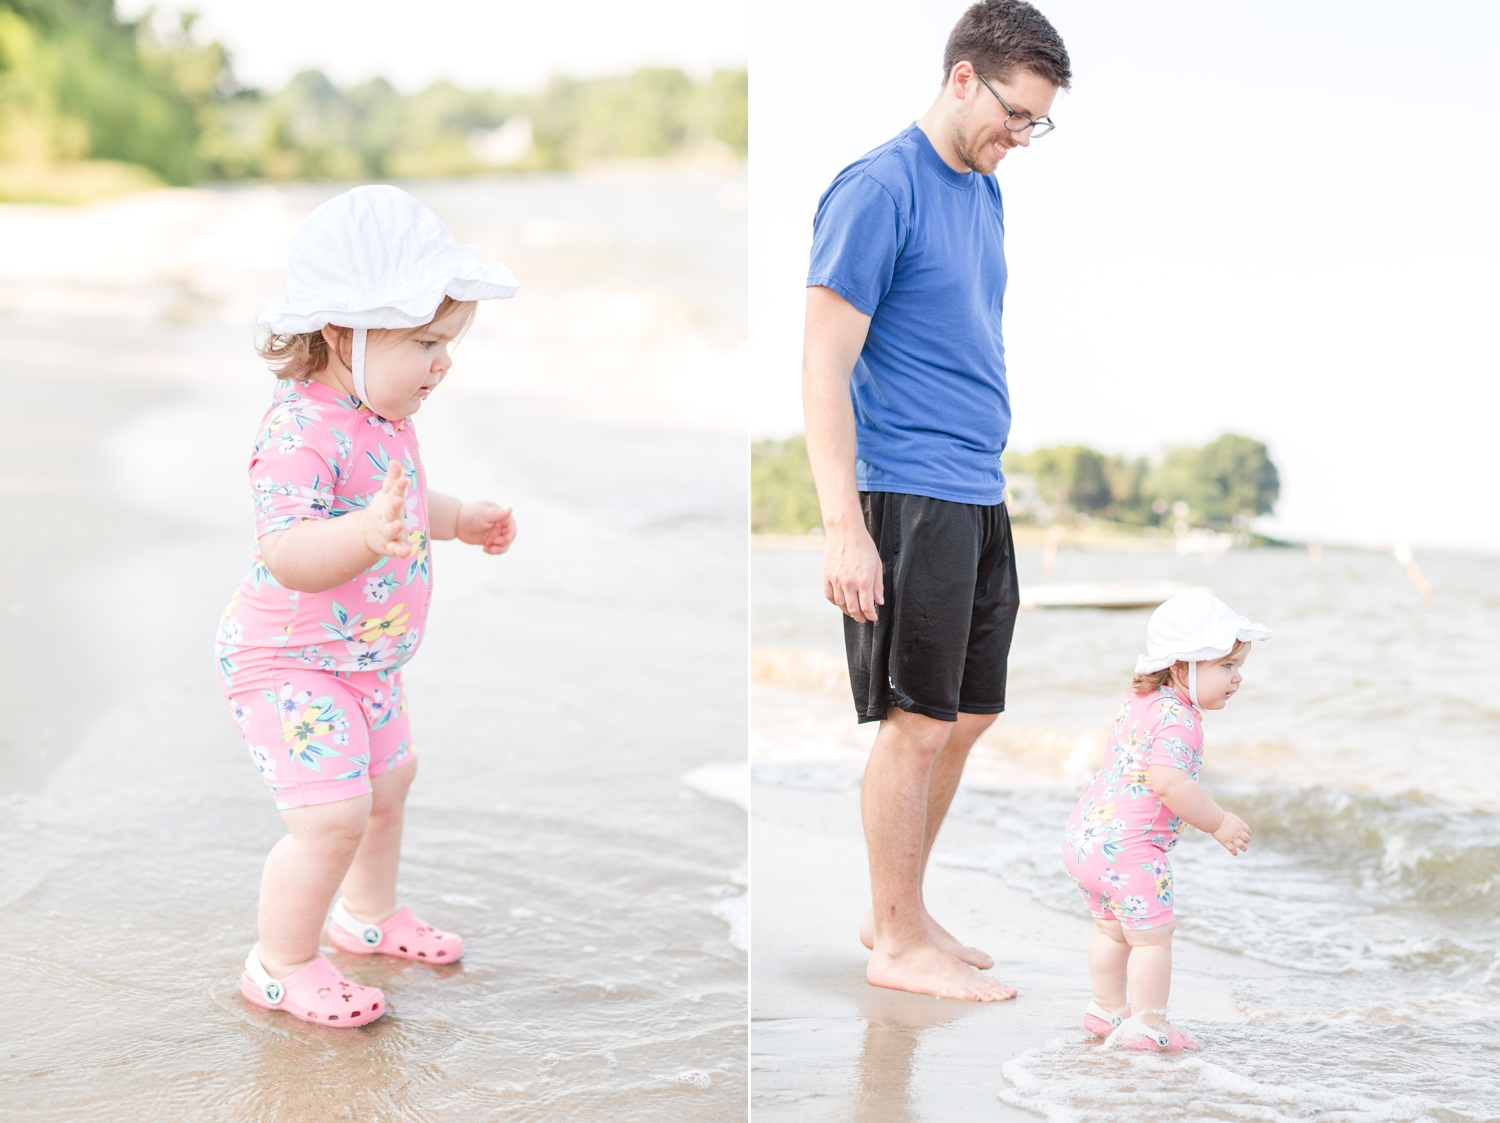 The first day Payton was a little scared of the water, but then she loved it!